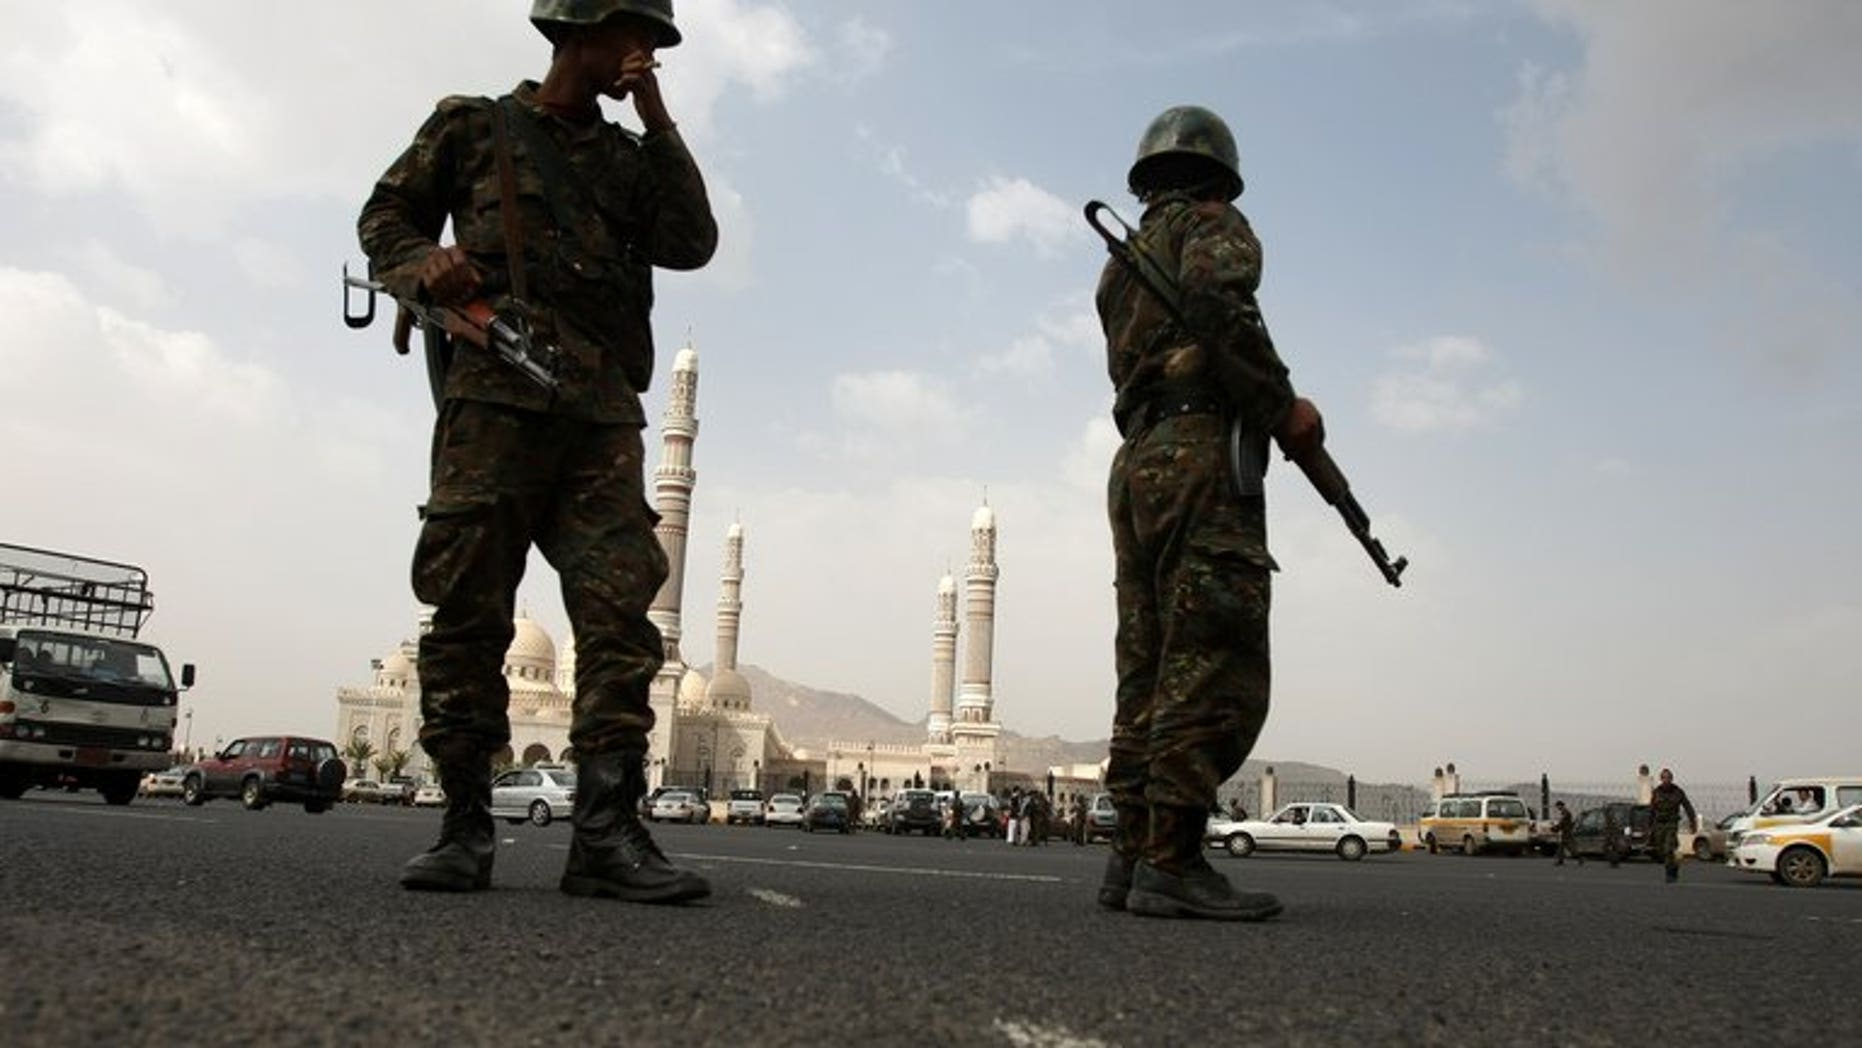 Yemeni soldiers stand guard outside the al-Saleh mosque on August 5, 2012, in Sanaa. The intelligence chief for the southern Yemeni city of Aden and his son were gunned down in their car Wednesday in a suspected Al-Qaeda hit, a security source said.